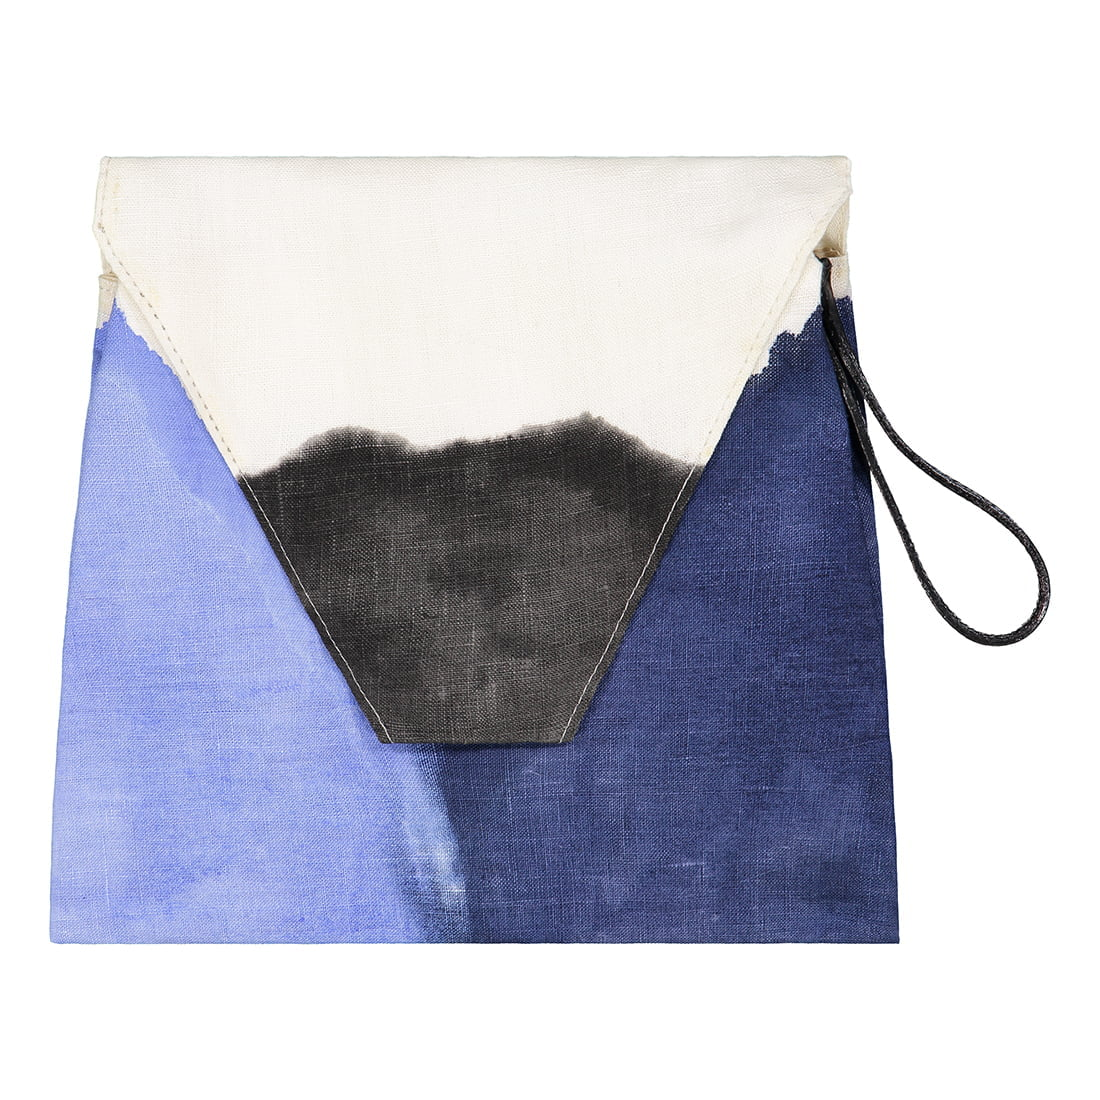 Vishnu hand painted linen clutch 1